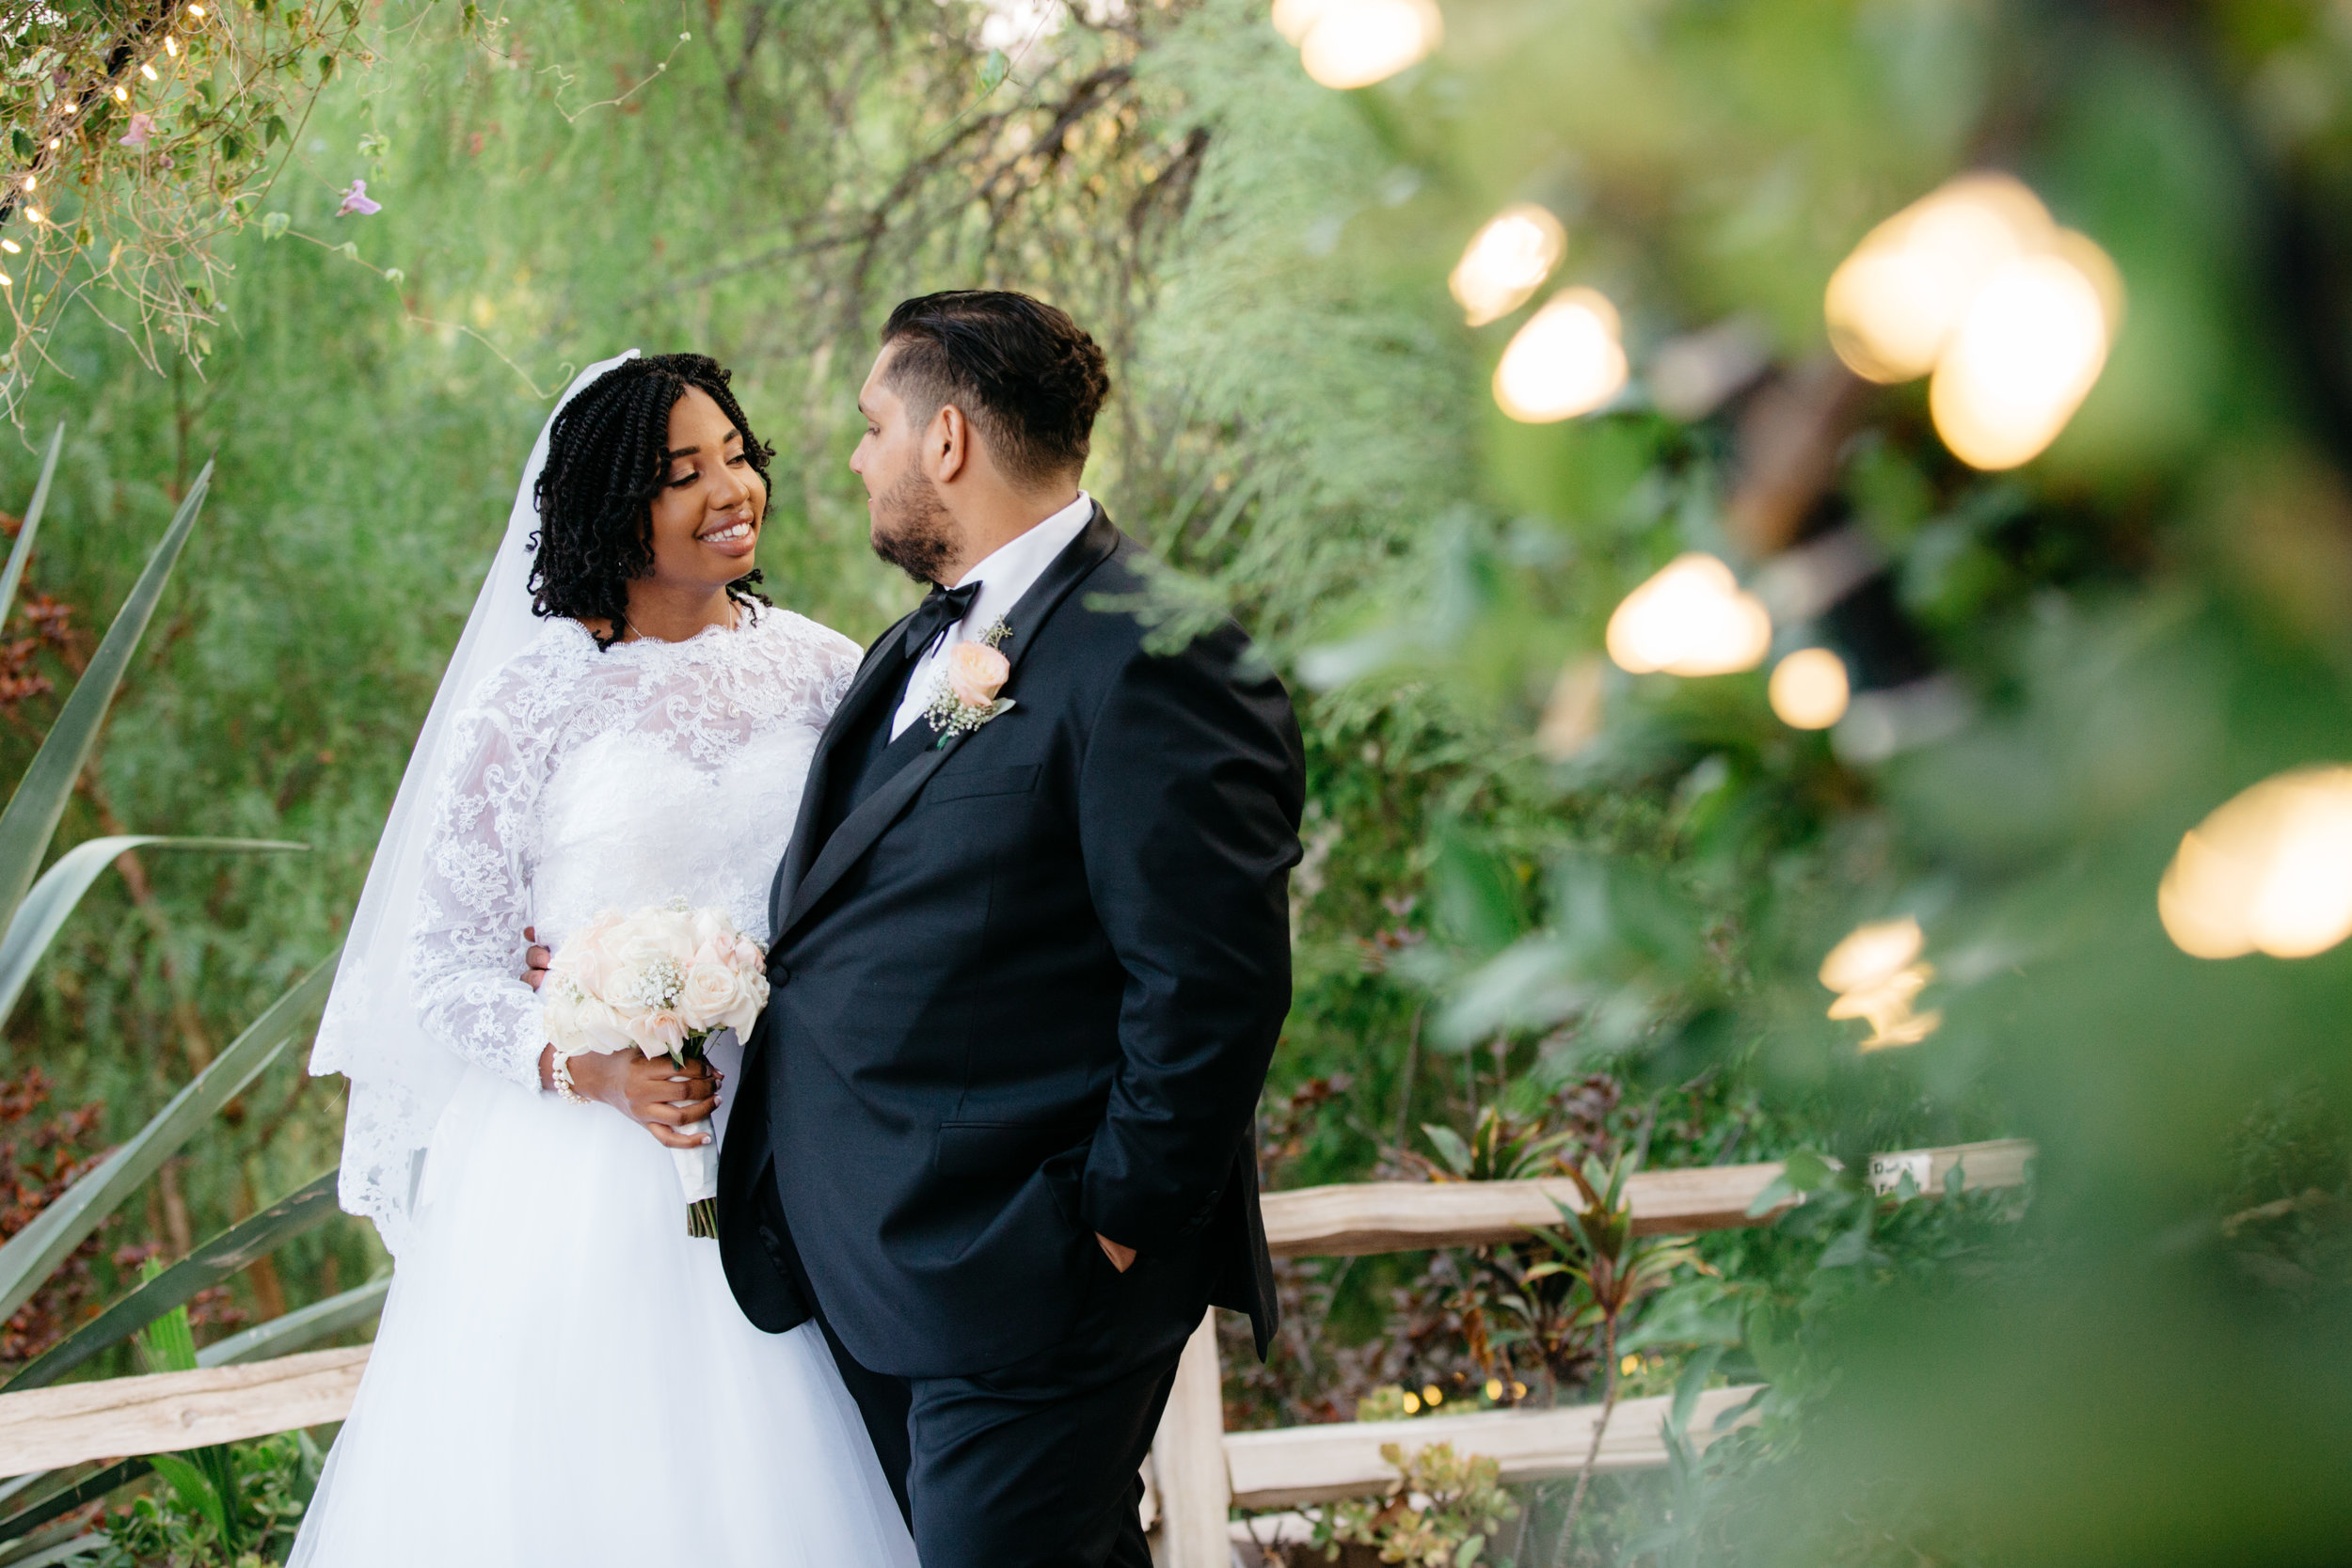 The Vineyard Wedding Jenna Bells and Laces Photography-44.jpg